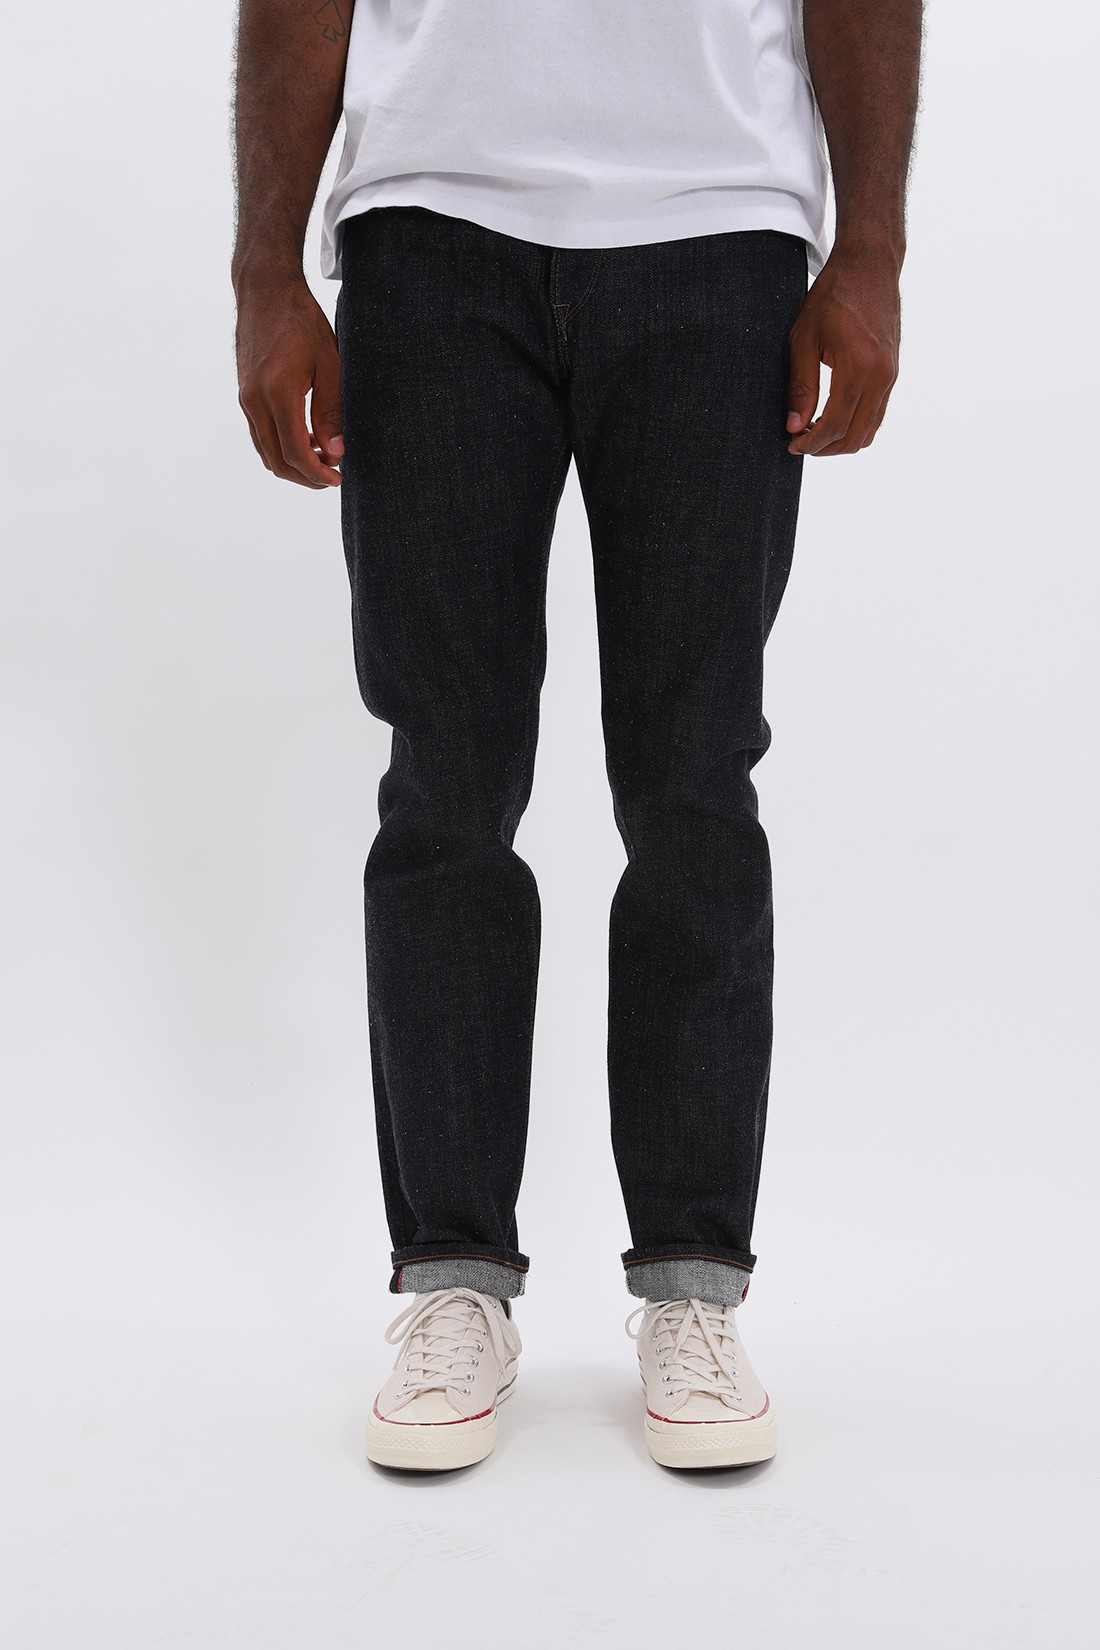 EDWIN / Regular tapered nihon mempu Indigo raw